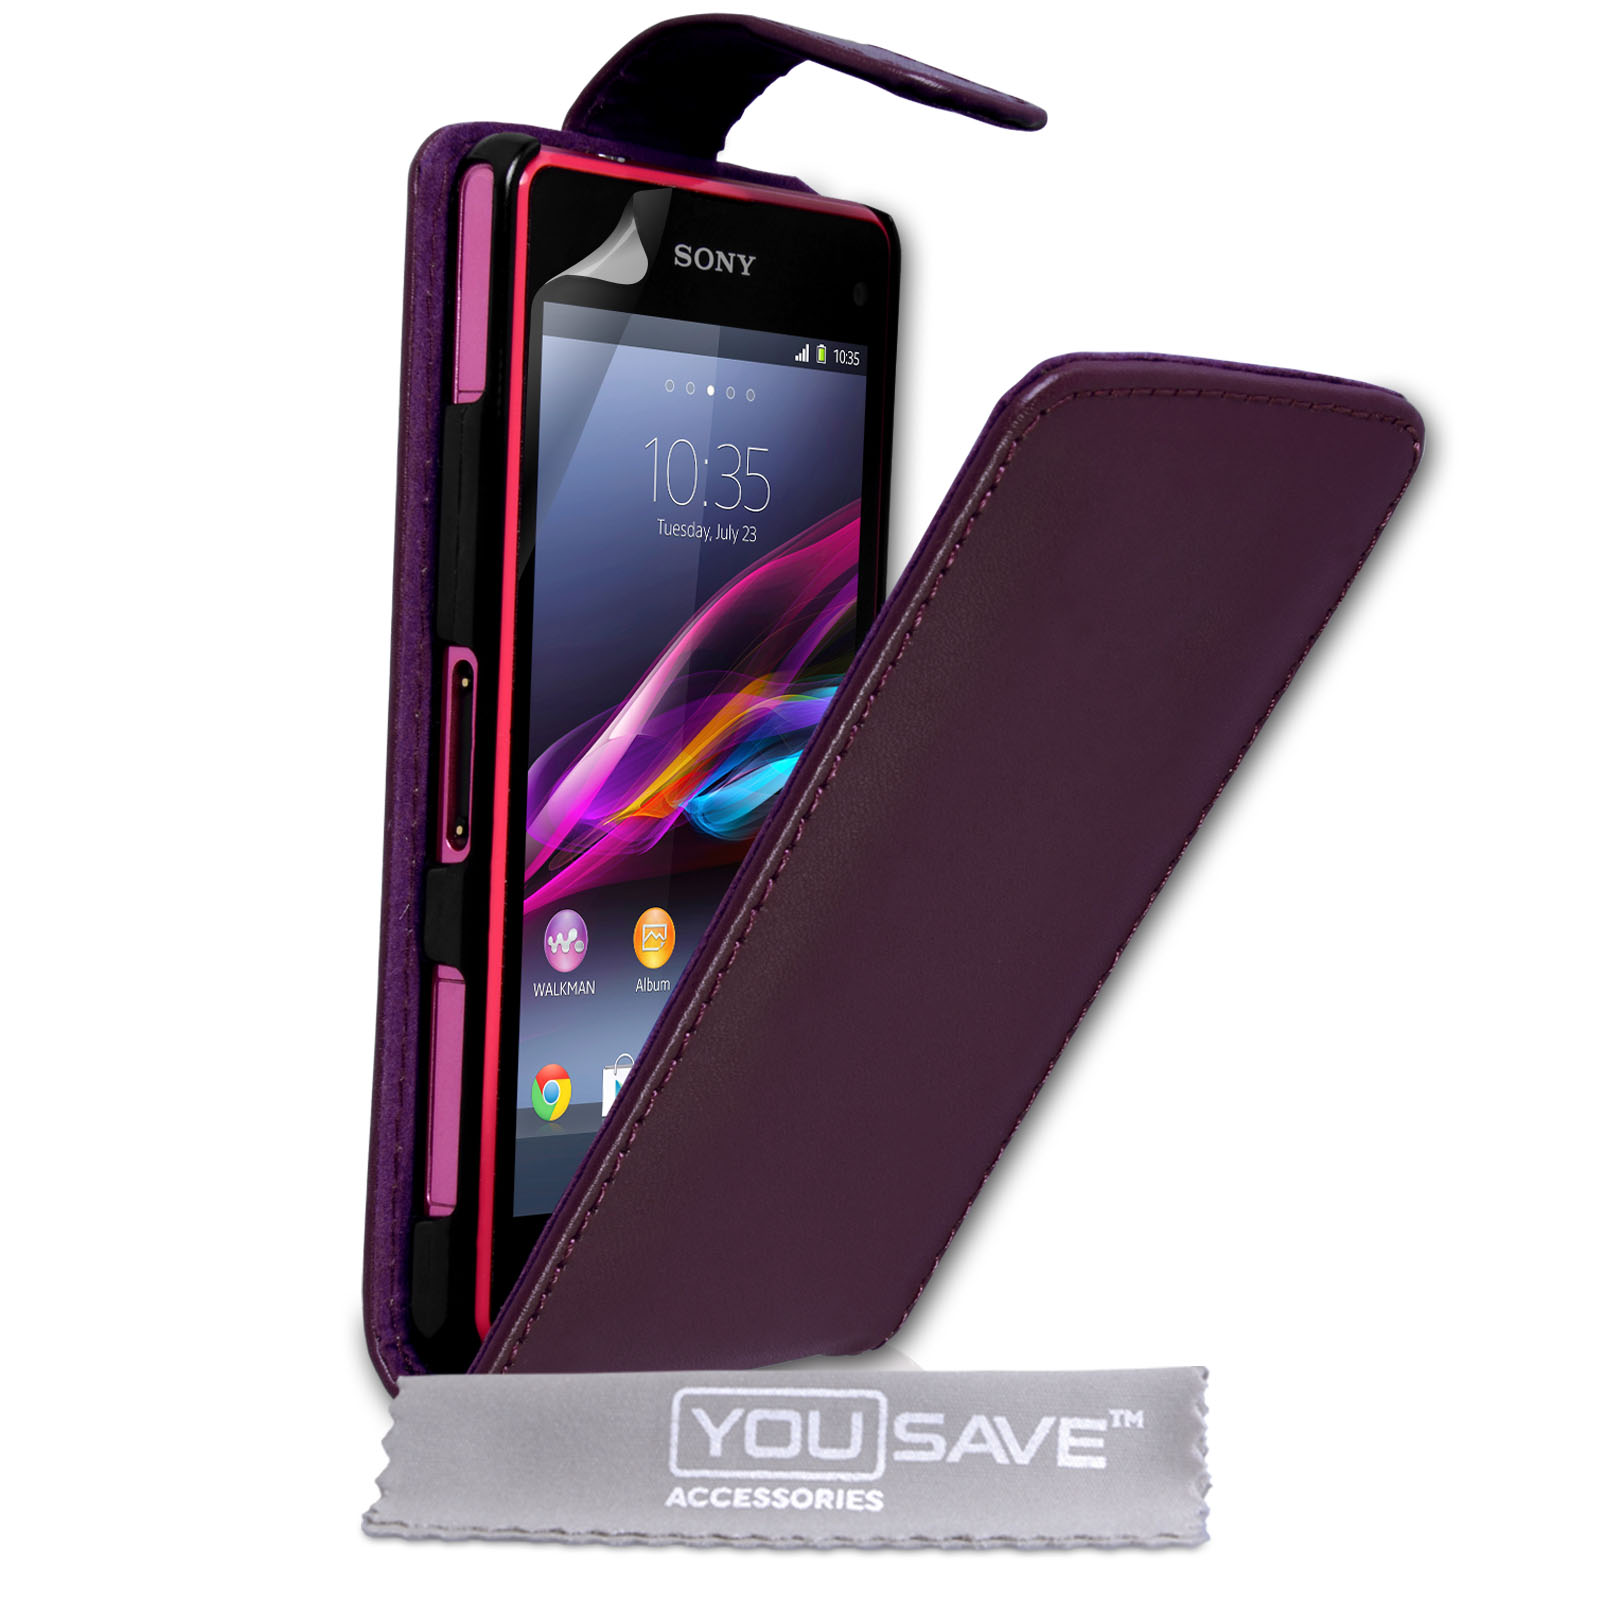 sony xperia z1 purple. yousave sony xperia z1 compact leather-effect flip case - purple